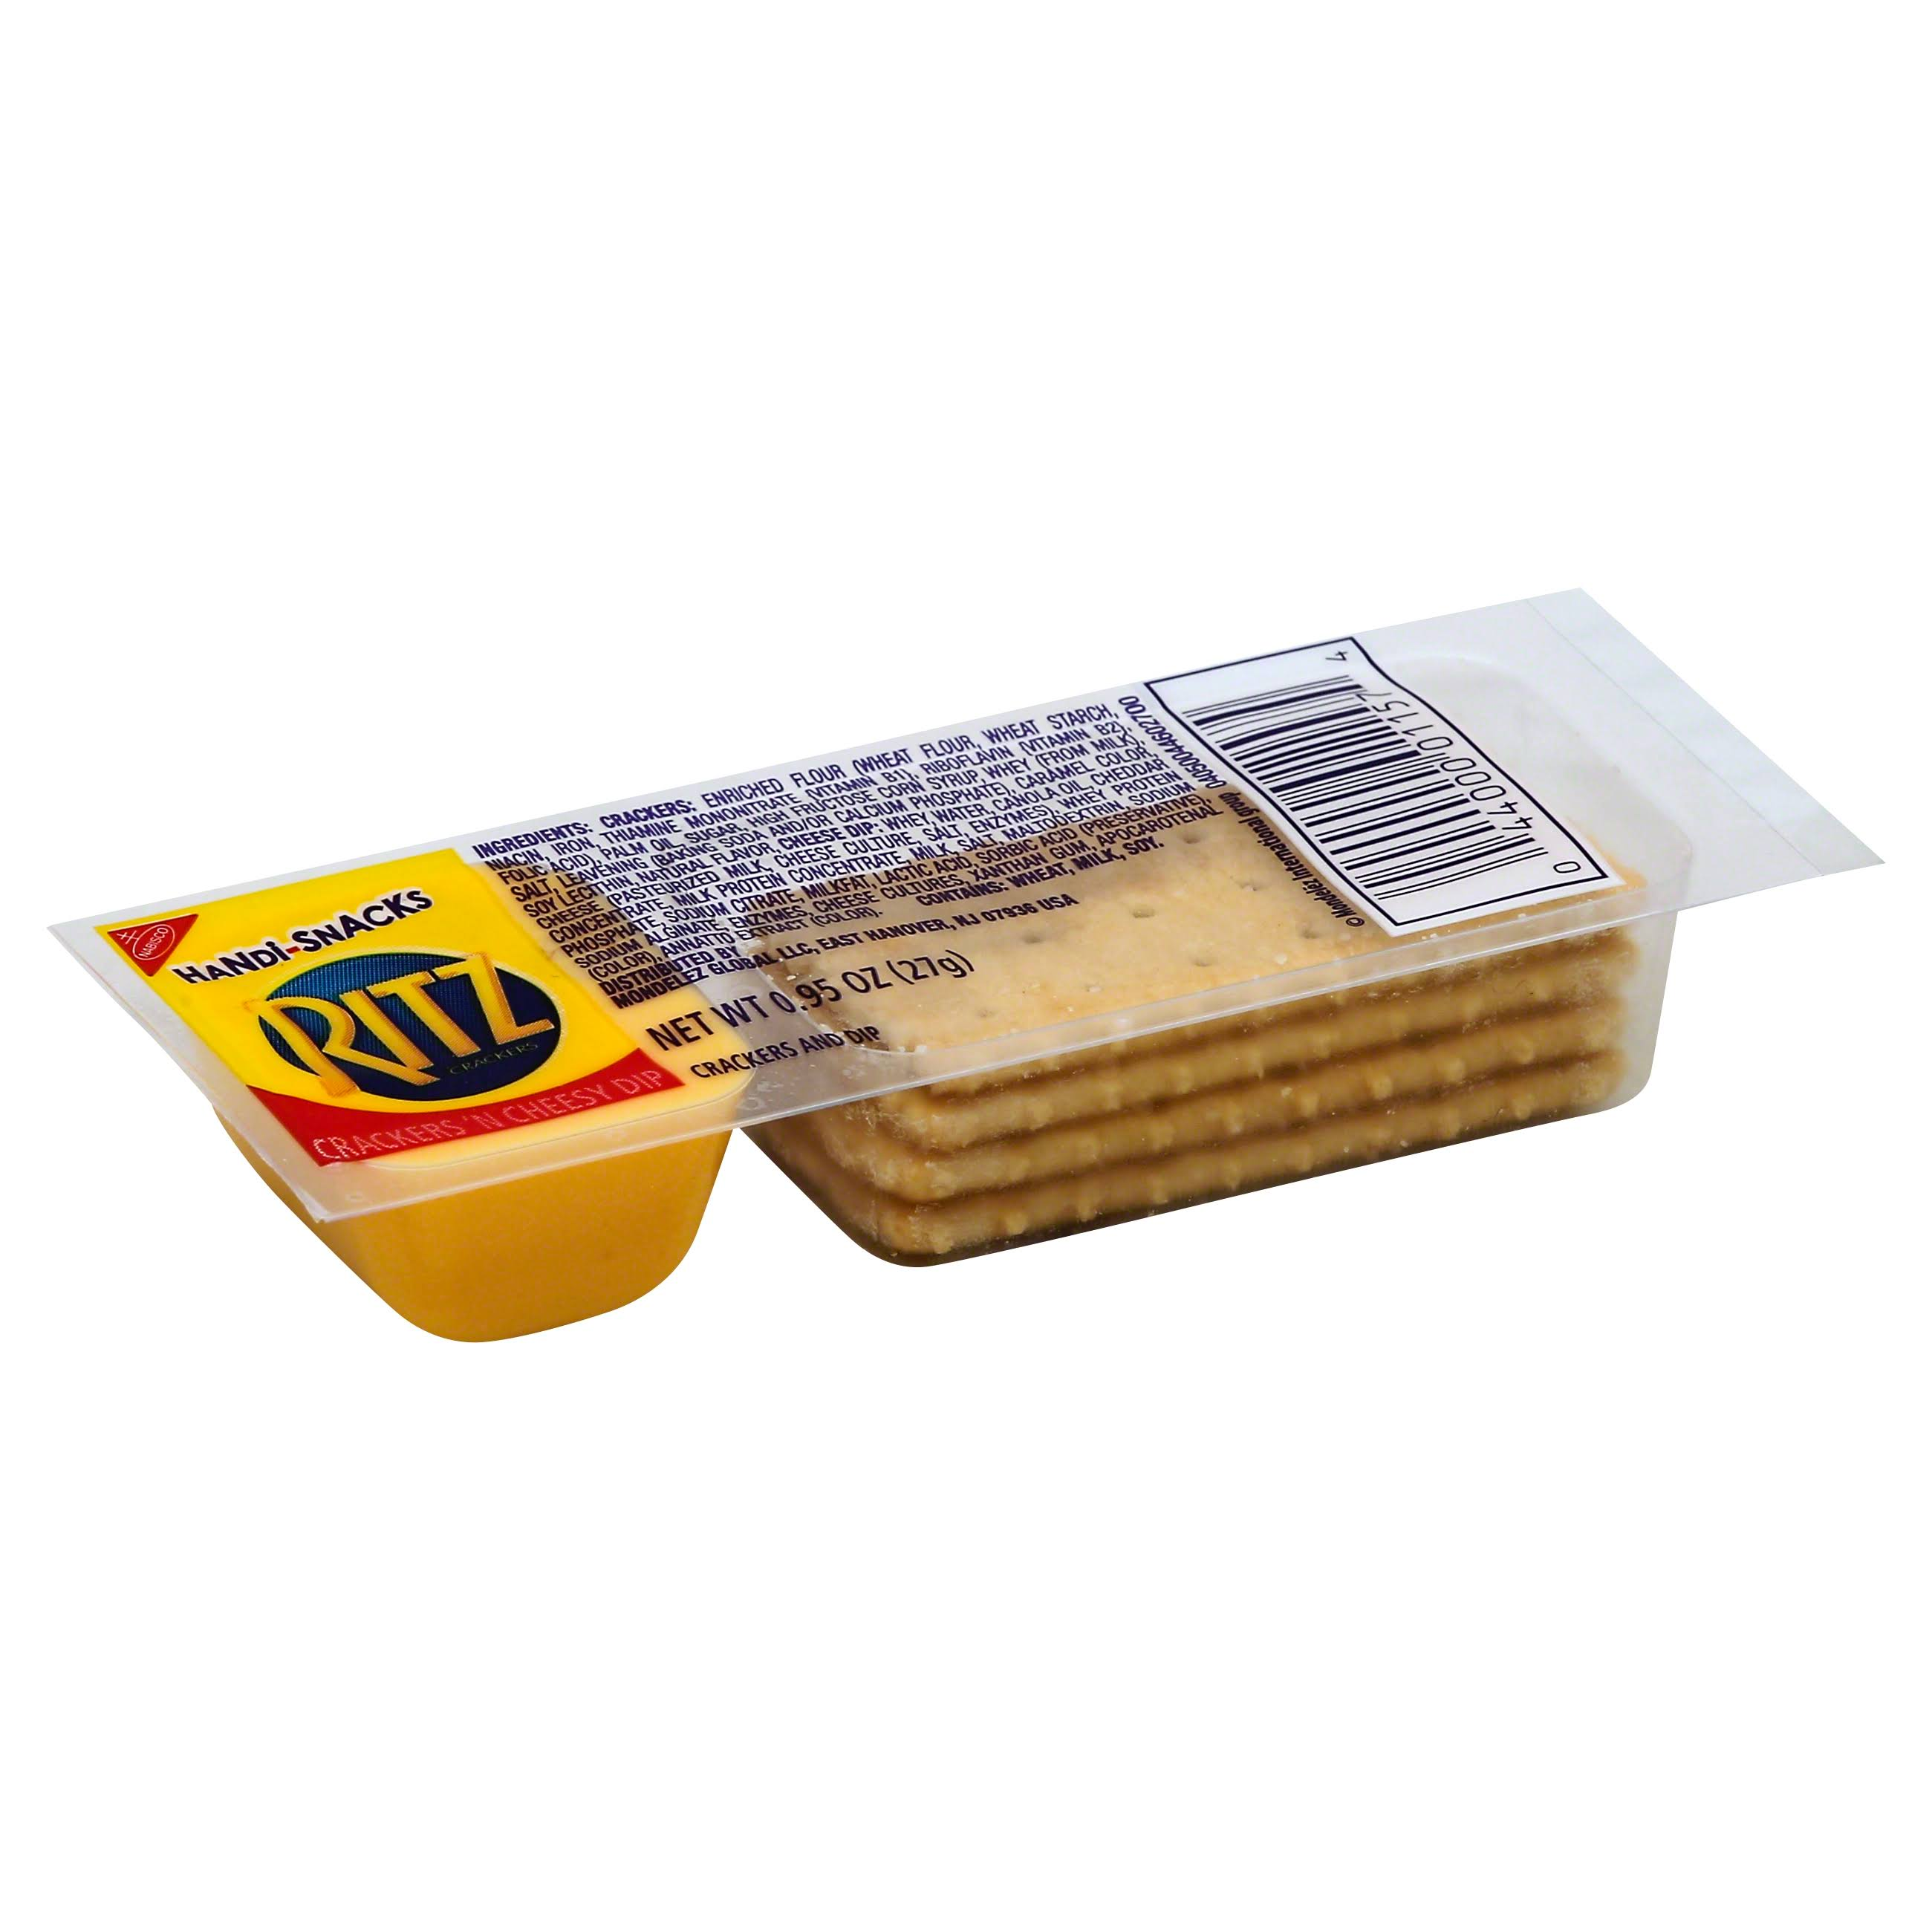 Ritz Cracker And Cheese Dip - 0.95 oz total